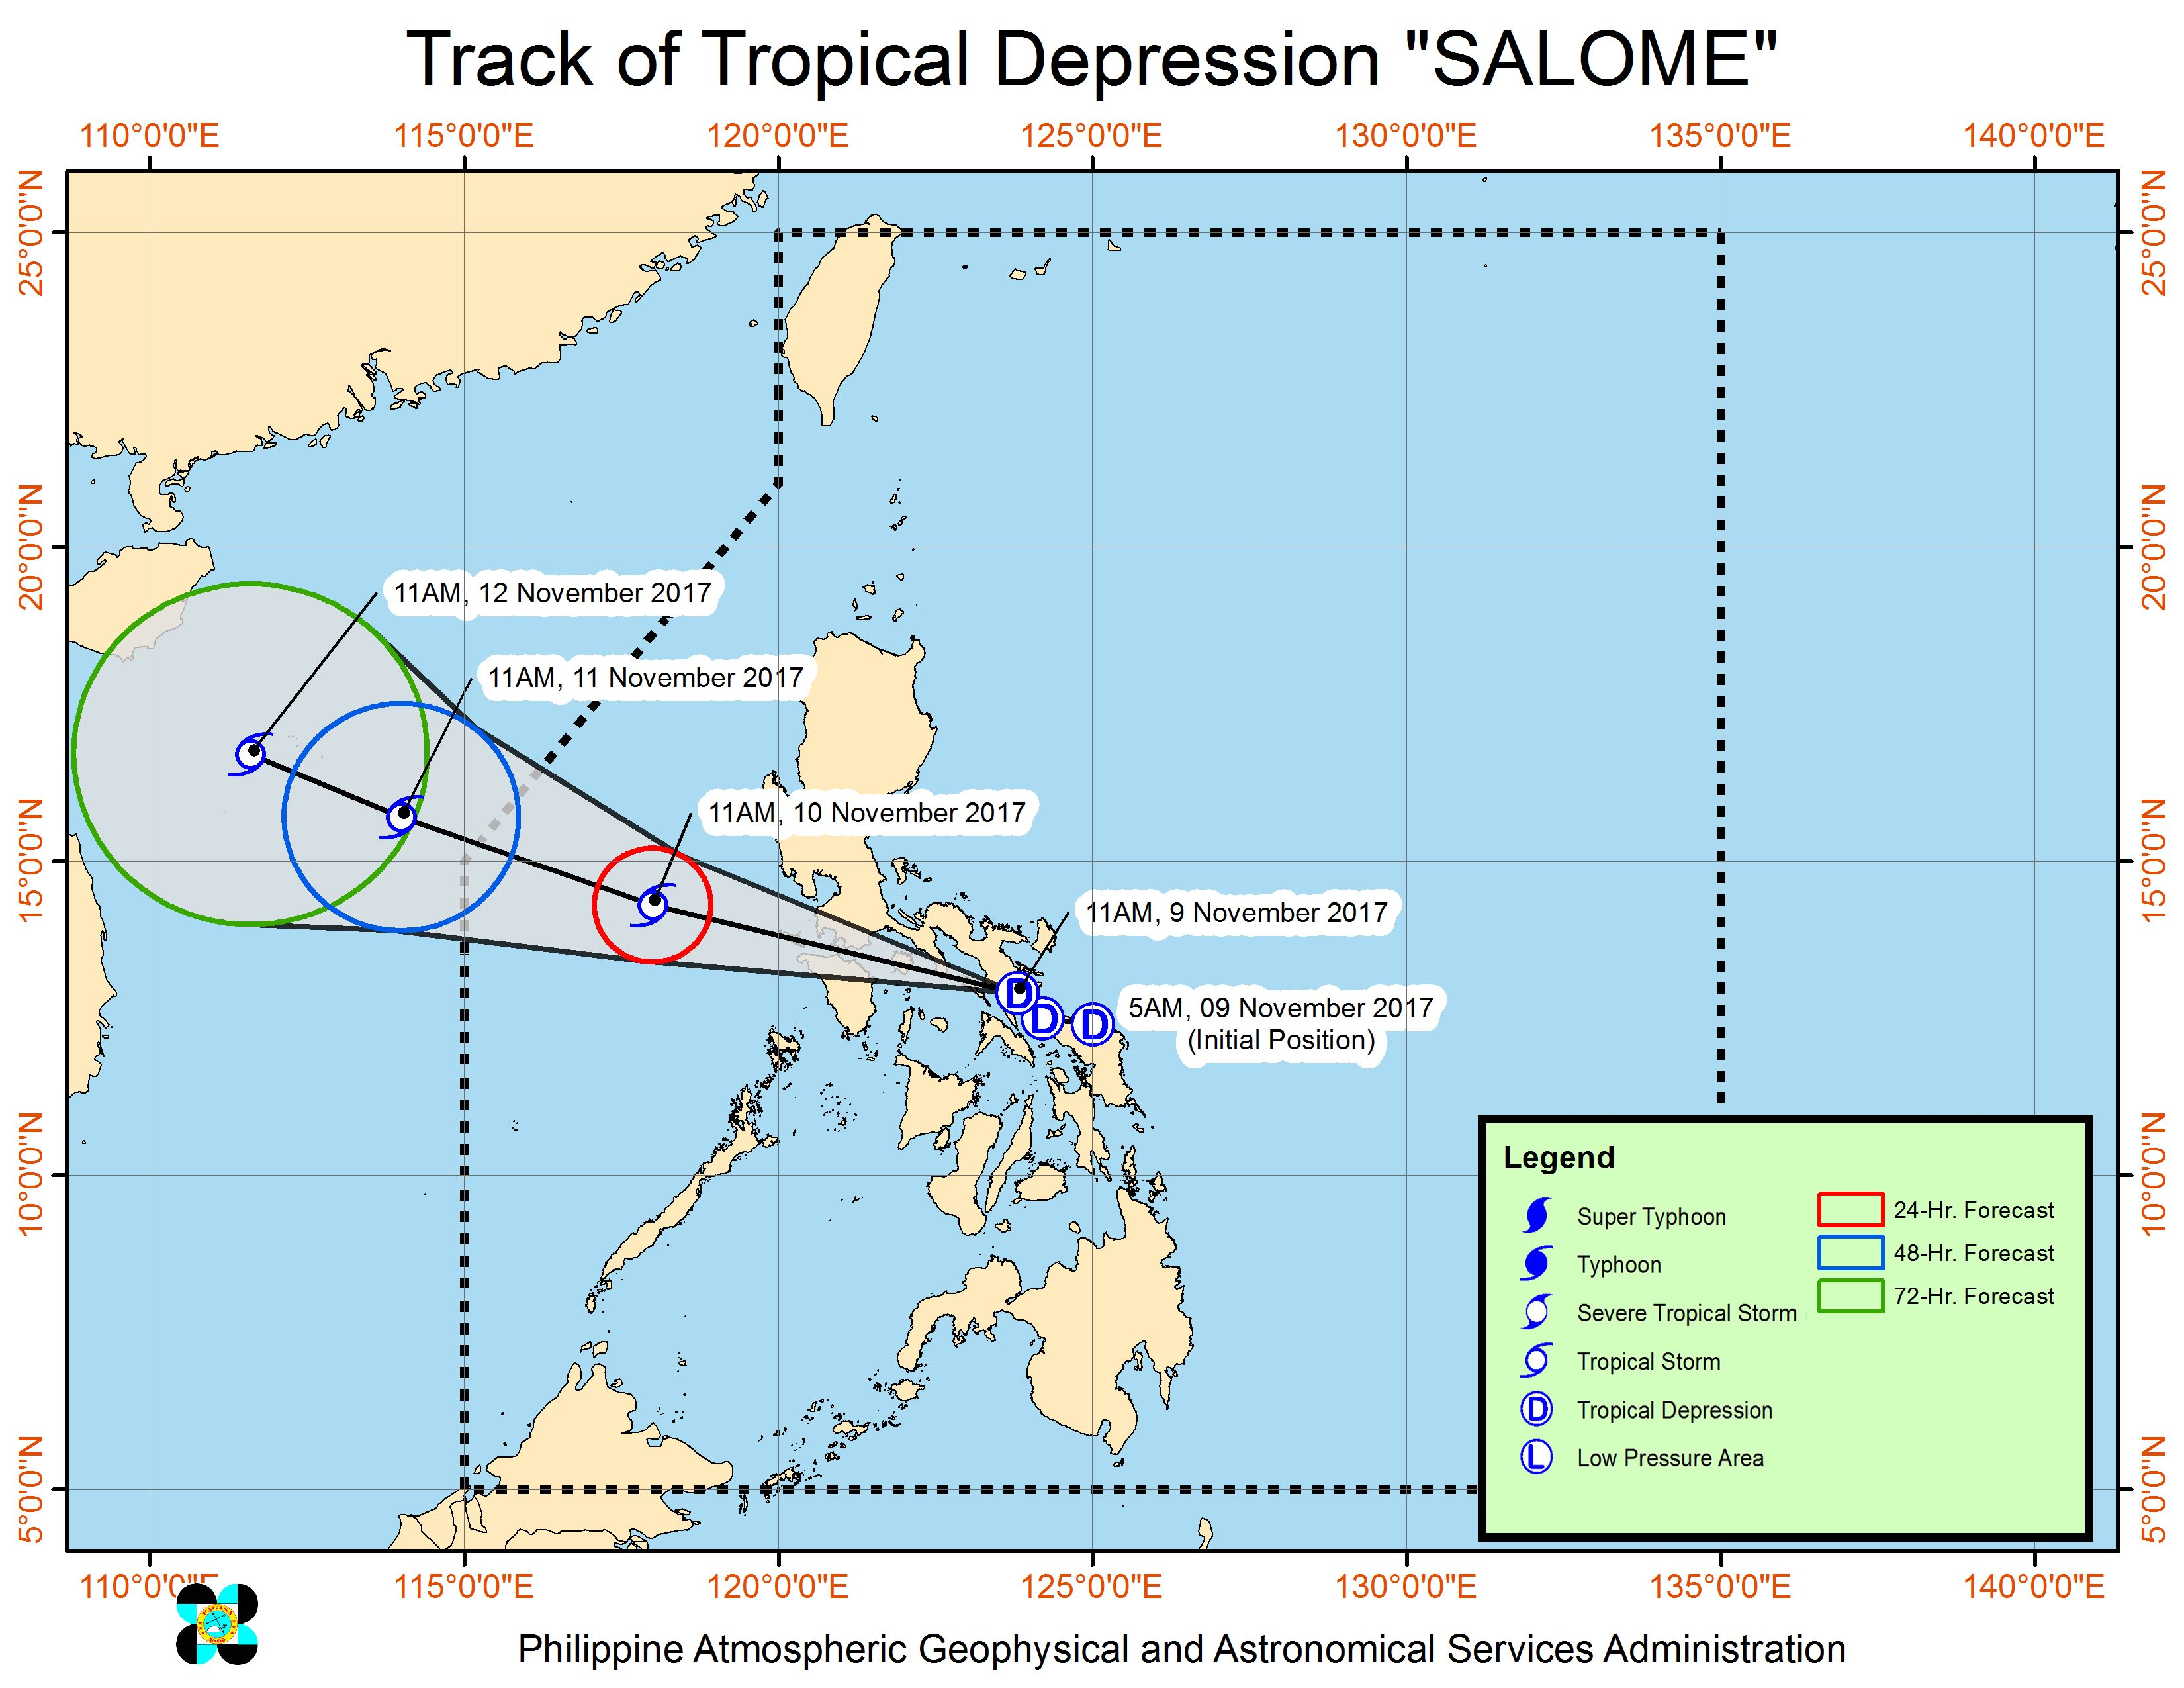 Forecast track of Tropical Depression Salome as of November 9, 2 pm. Image courtesy of PAGASA